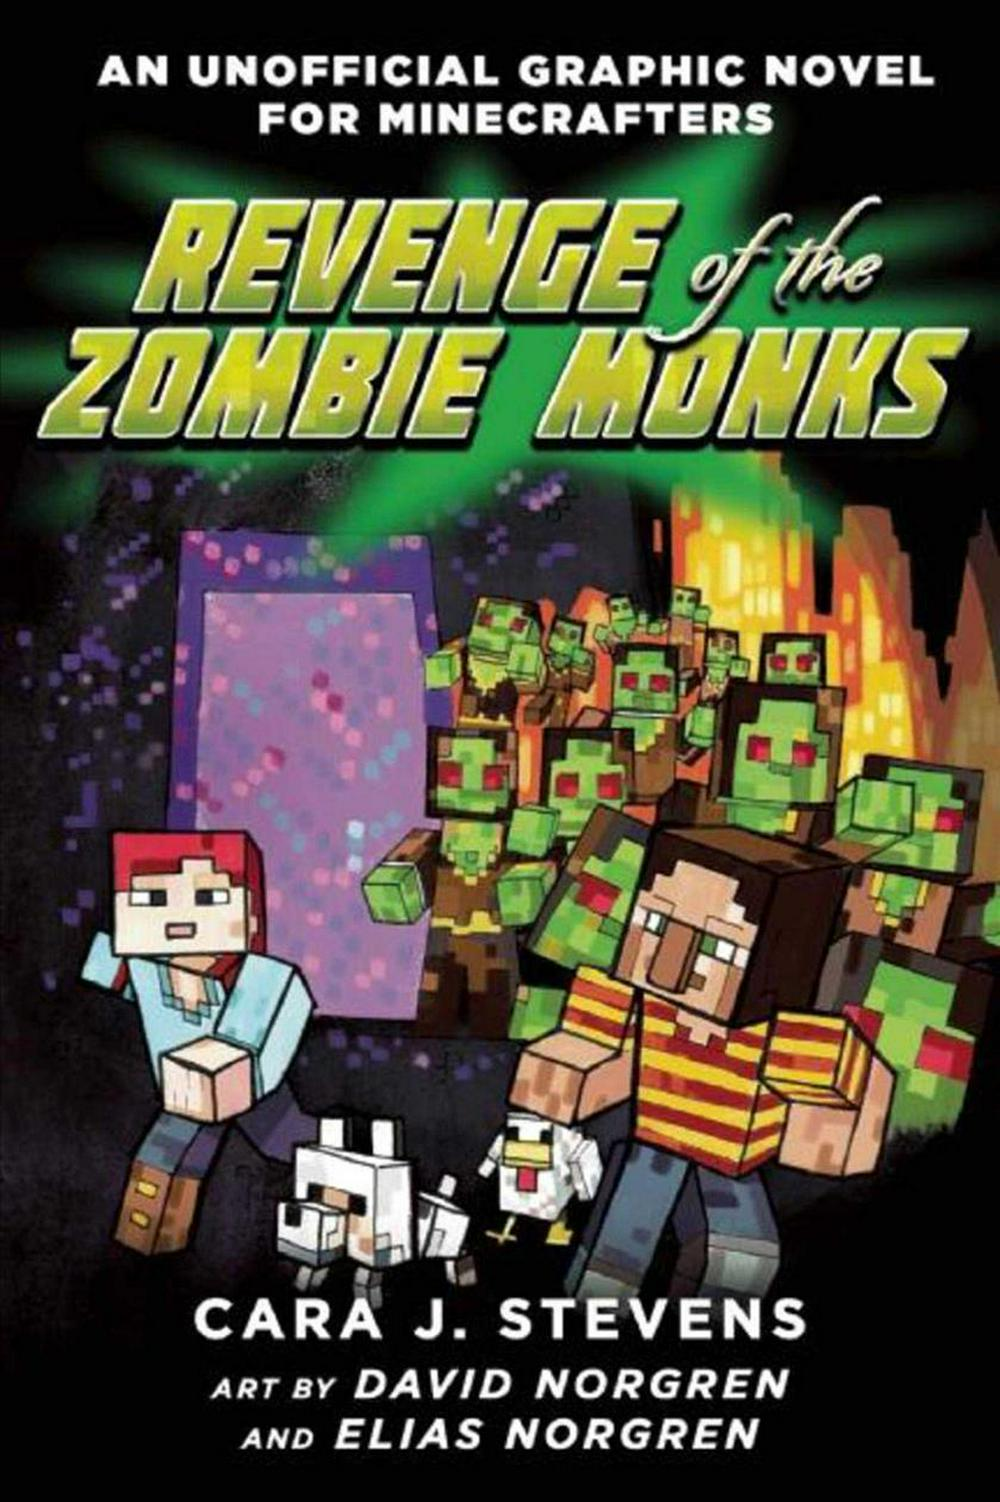 Revenge of the Zombie MonksAn Unofficial Graphic Novel for Minecrafters, #2